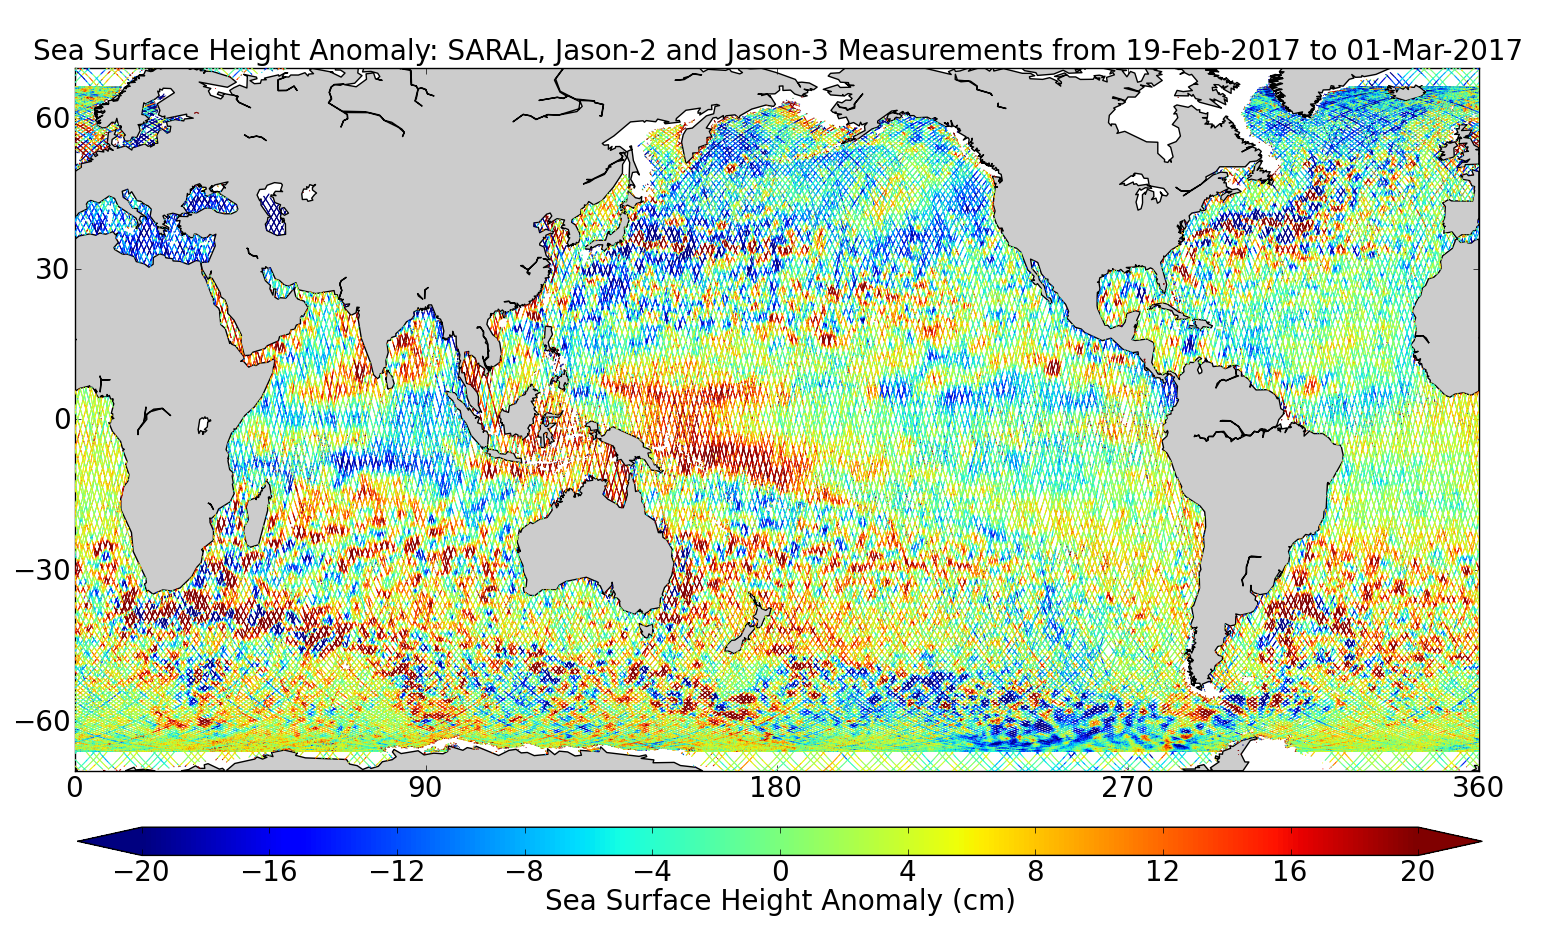 Sea Surface Height Anomaly: SARAL, Jason-2 and Jason-3 Measurements from 19-Feb-2017 to 01-Mar-2017